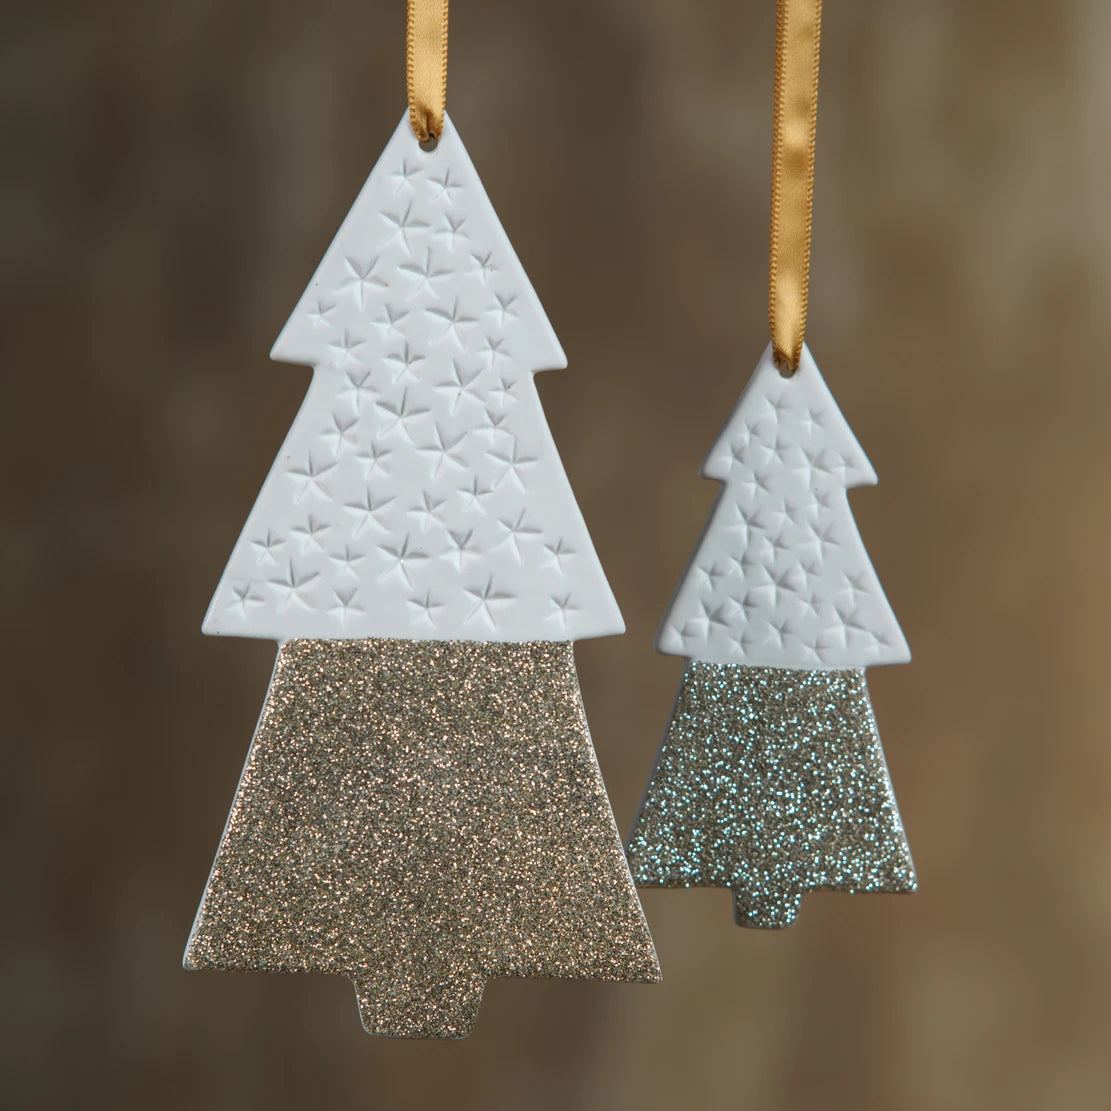 Two-Tone Tree Ornaments - Gold